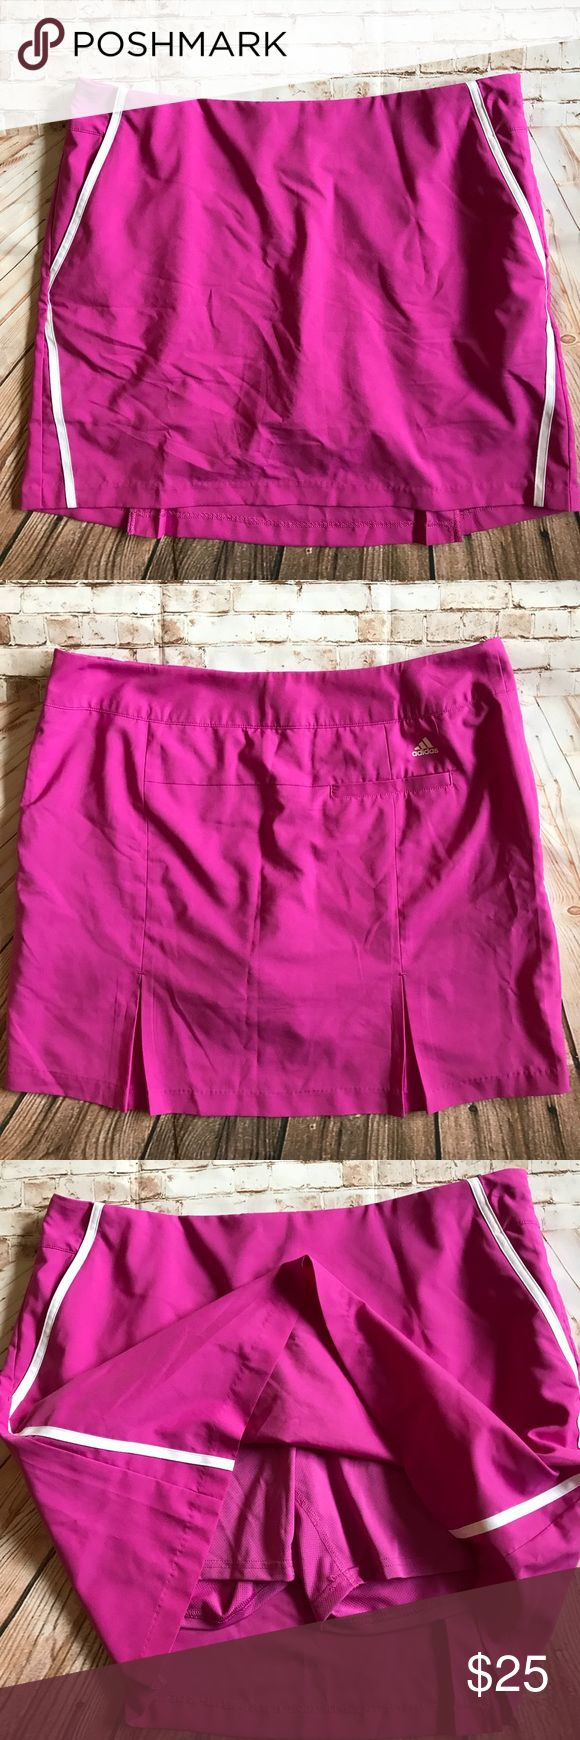 """Adidas Pink ClimaCool Sports Skirt Size 12 Adidas ClimaCool sports skirt with inner shorts.  Great for tennis or golf. 100% polyester. 2 front pockets, 1 back pocket. Side zip closure. Approximate flat lay measurements are Waist 17.5"""", Length 18"""". adidas Skirts"""